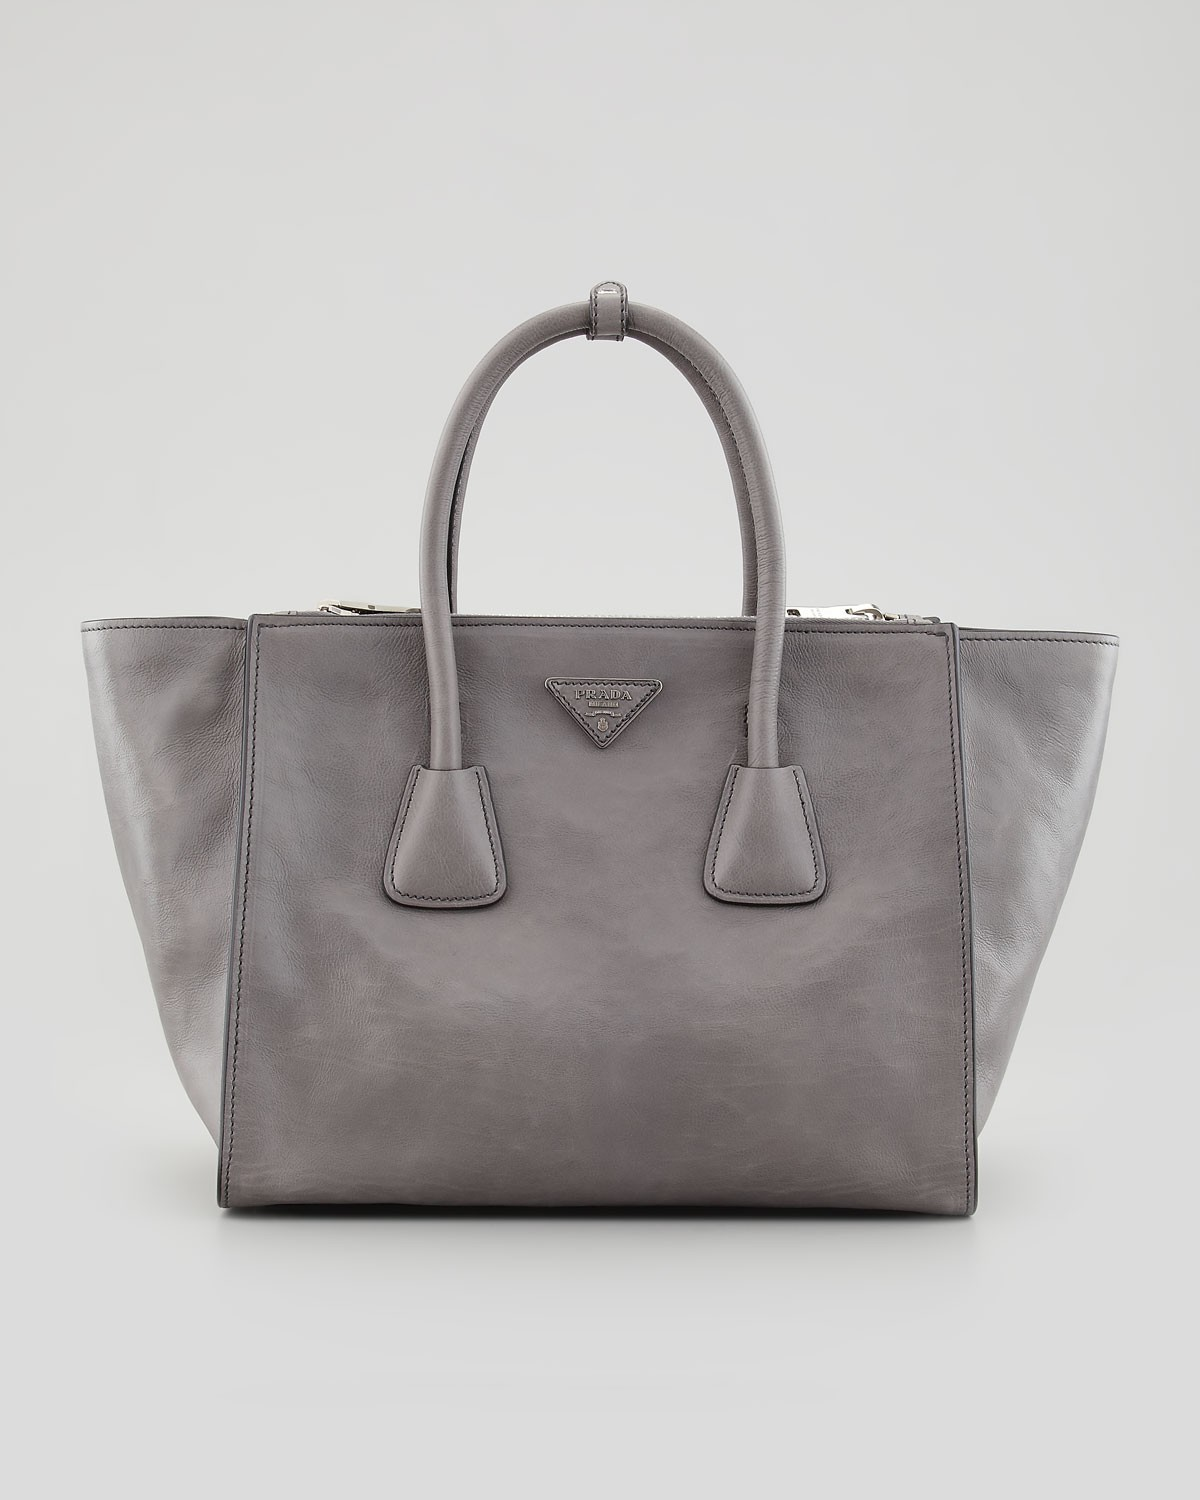 53c64cc04387 Prada Glace Calf Large Twin Pocket Tote Bag in Gray | Pradux